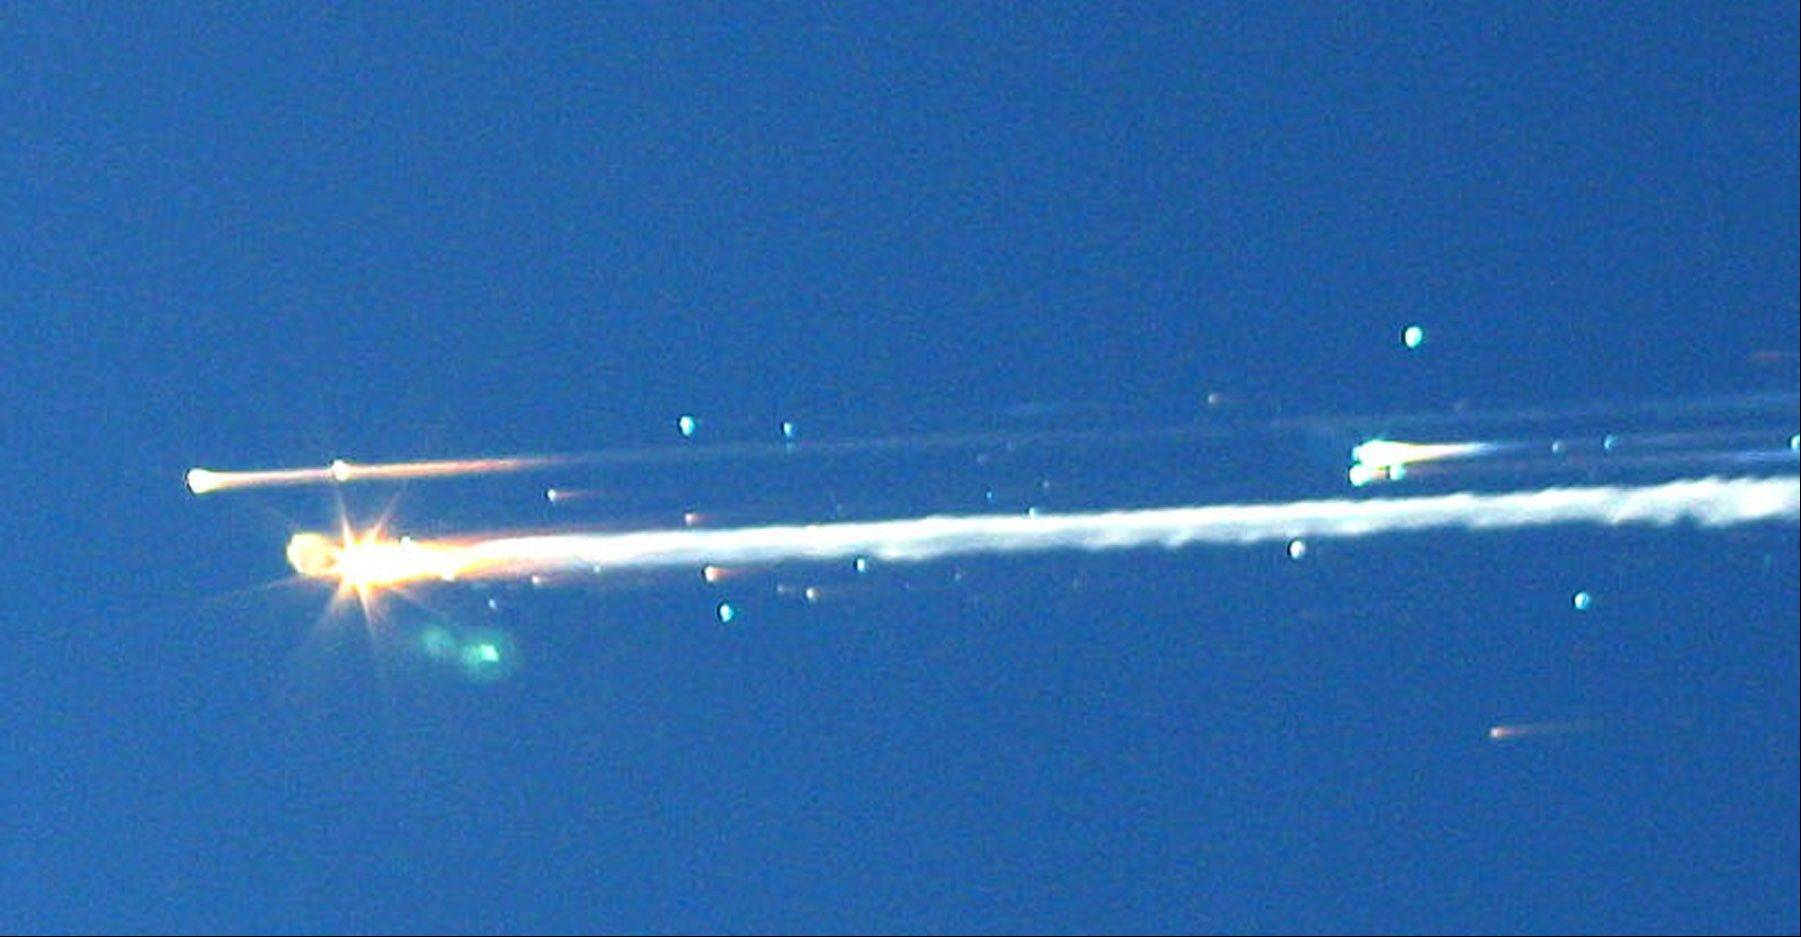 In this Feb. 1, 2003, photo, debris from the space shuttle Columbia streaks across the sky over Tyler, Texas. The Columbia broke apart in flames upon returning to Earth, killing all seven astronauts just minutes before they were to glide to a landing in Florida.